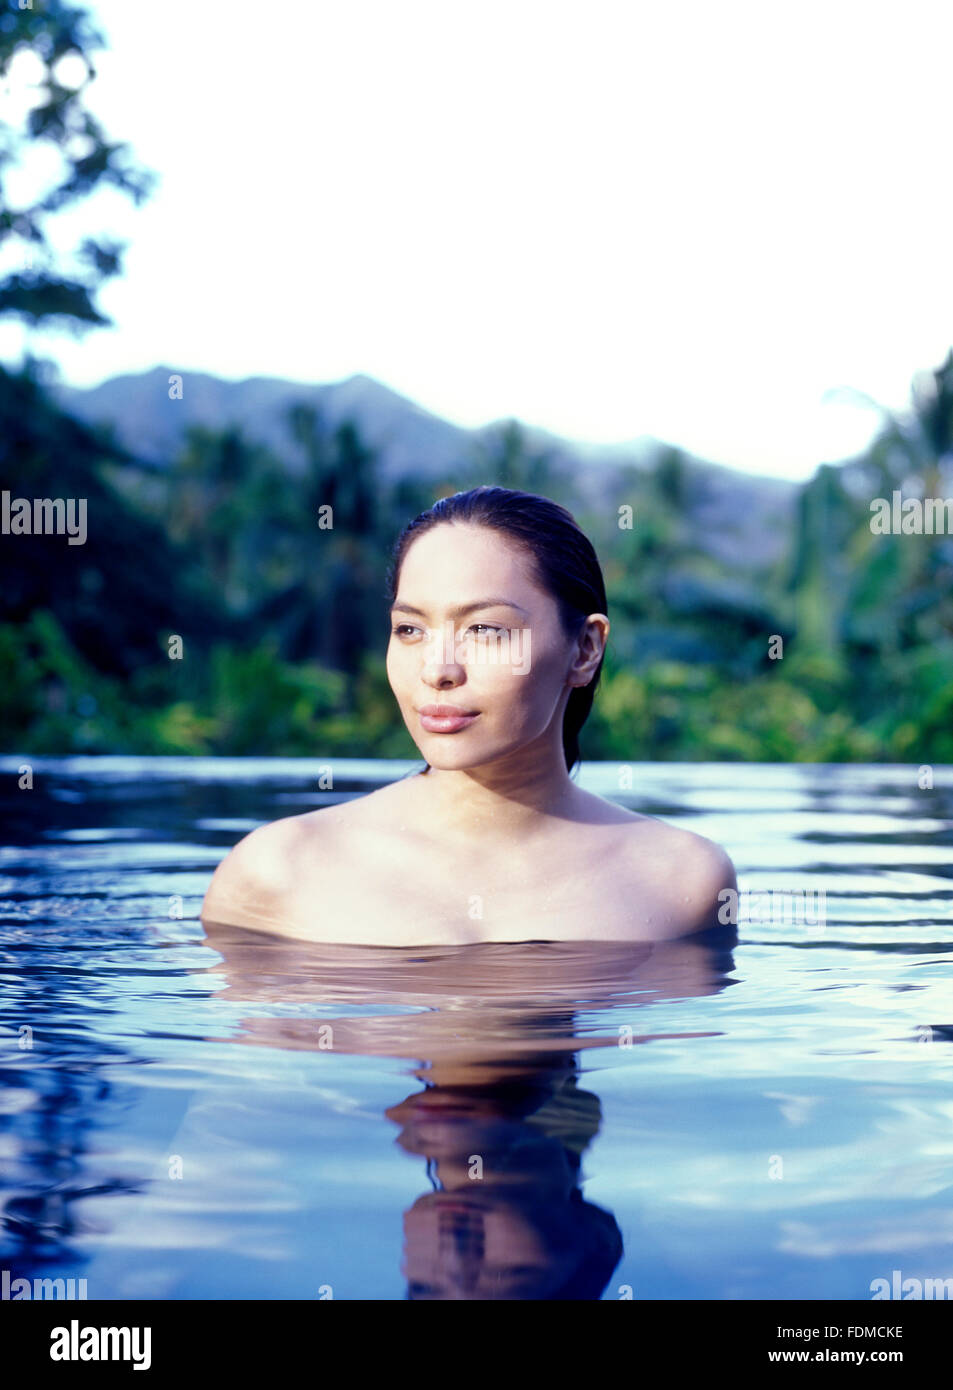 A woman relaxes in the infinity pool at The Farm at San Benito, Philippines. - Stock Image